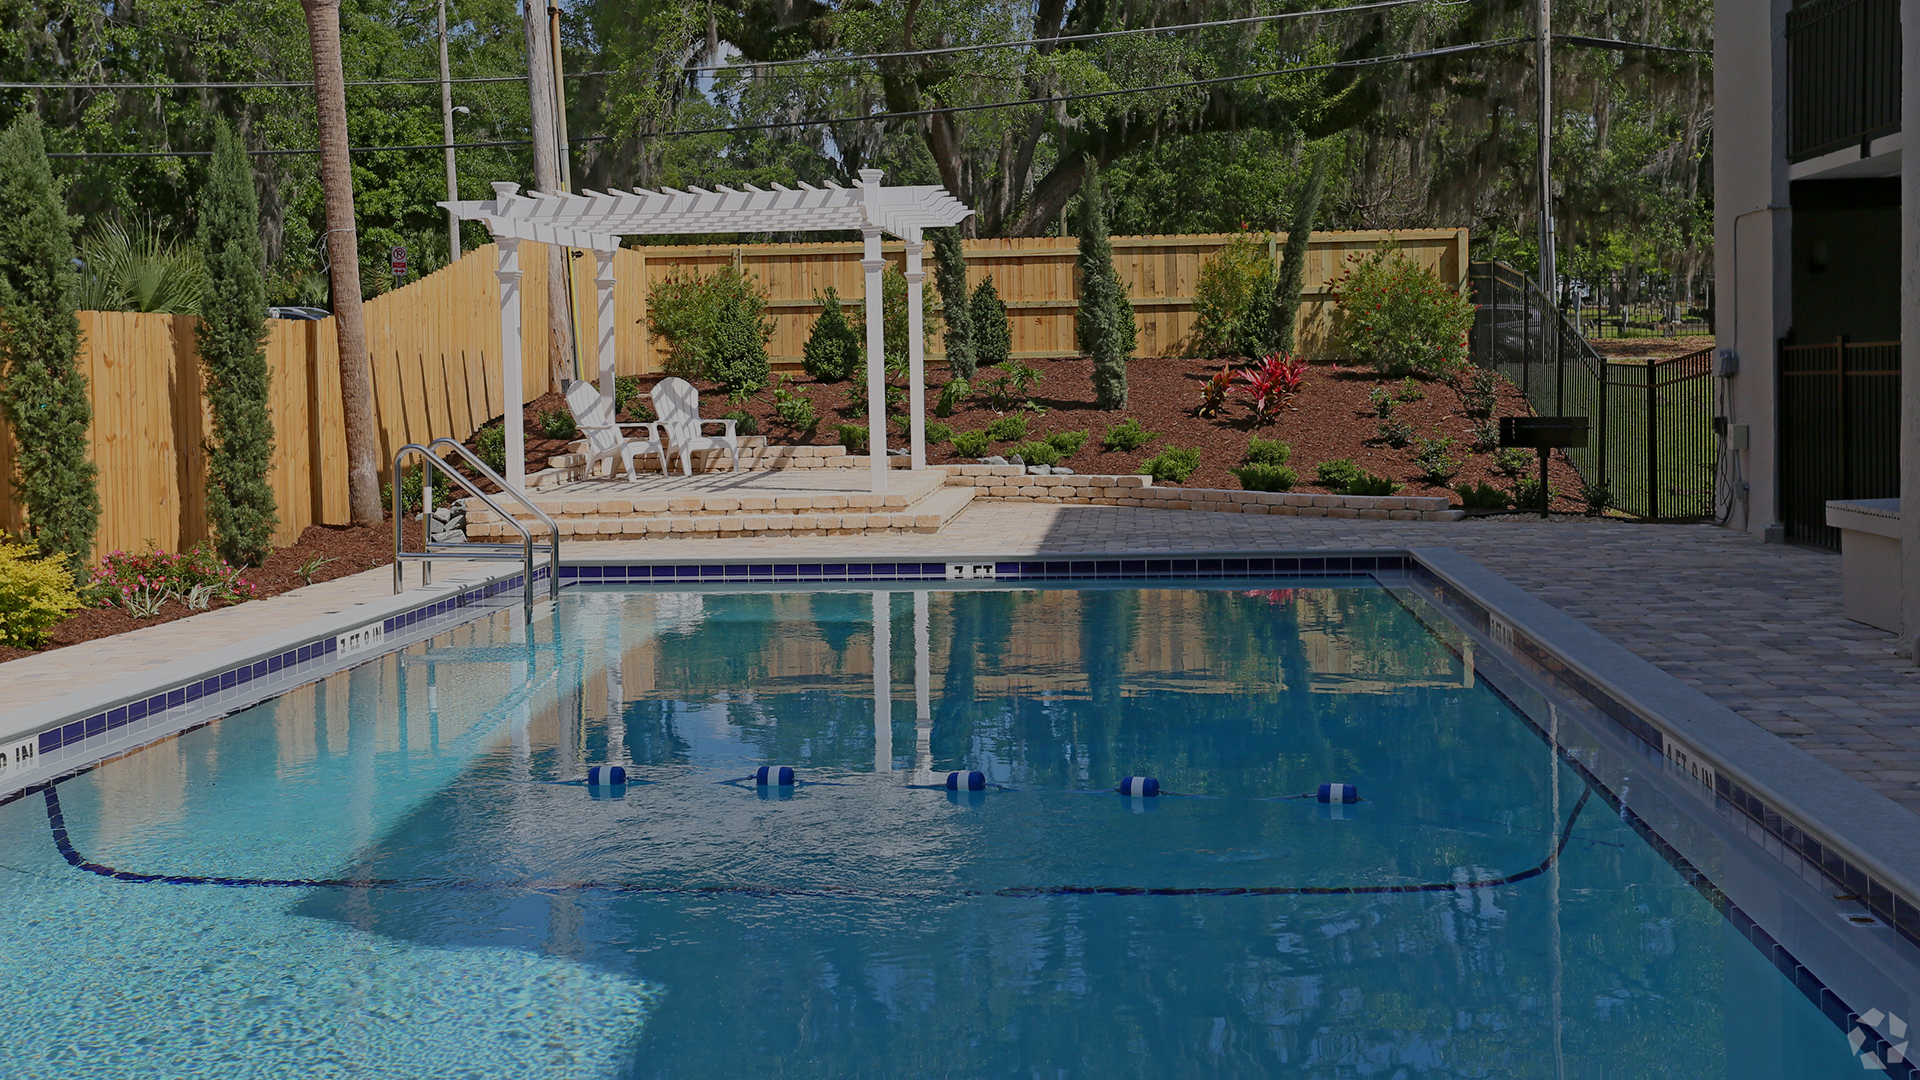 401 West Park Ave Tallahassee, FL 32301